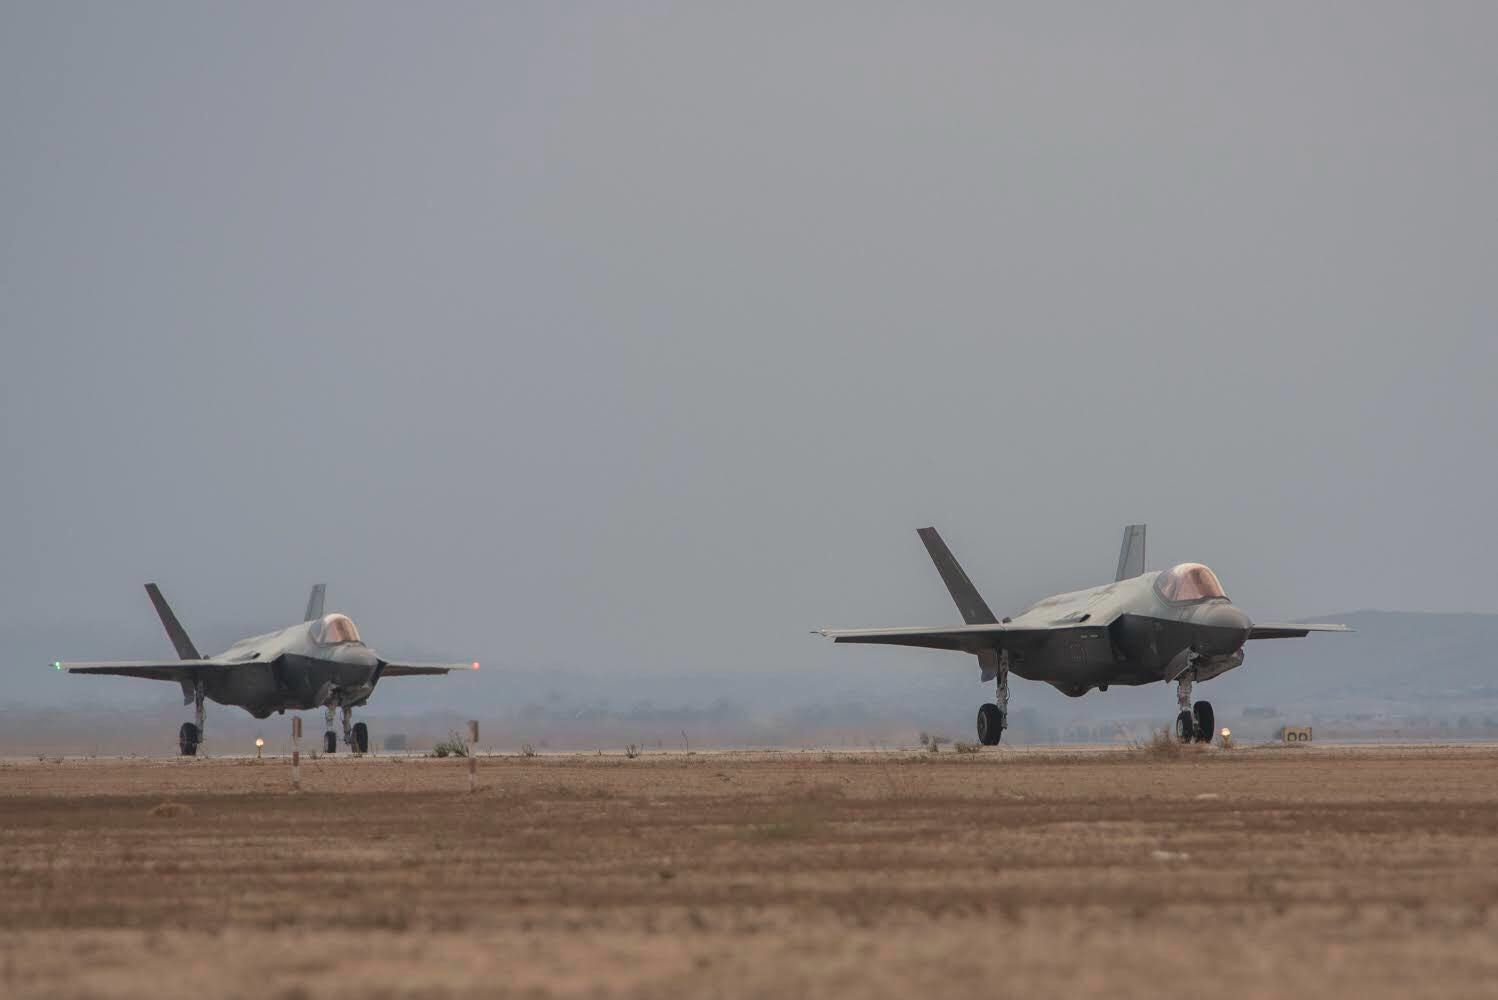 After crash, Pentagon says temporary pause in F-35 flights